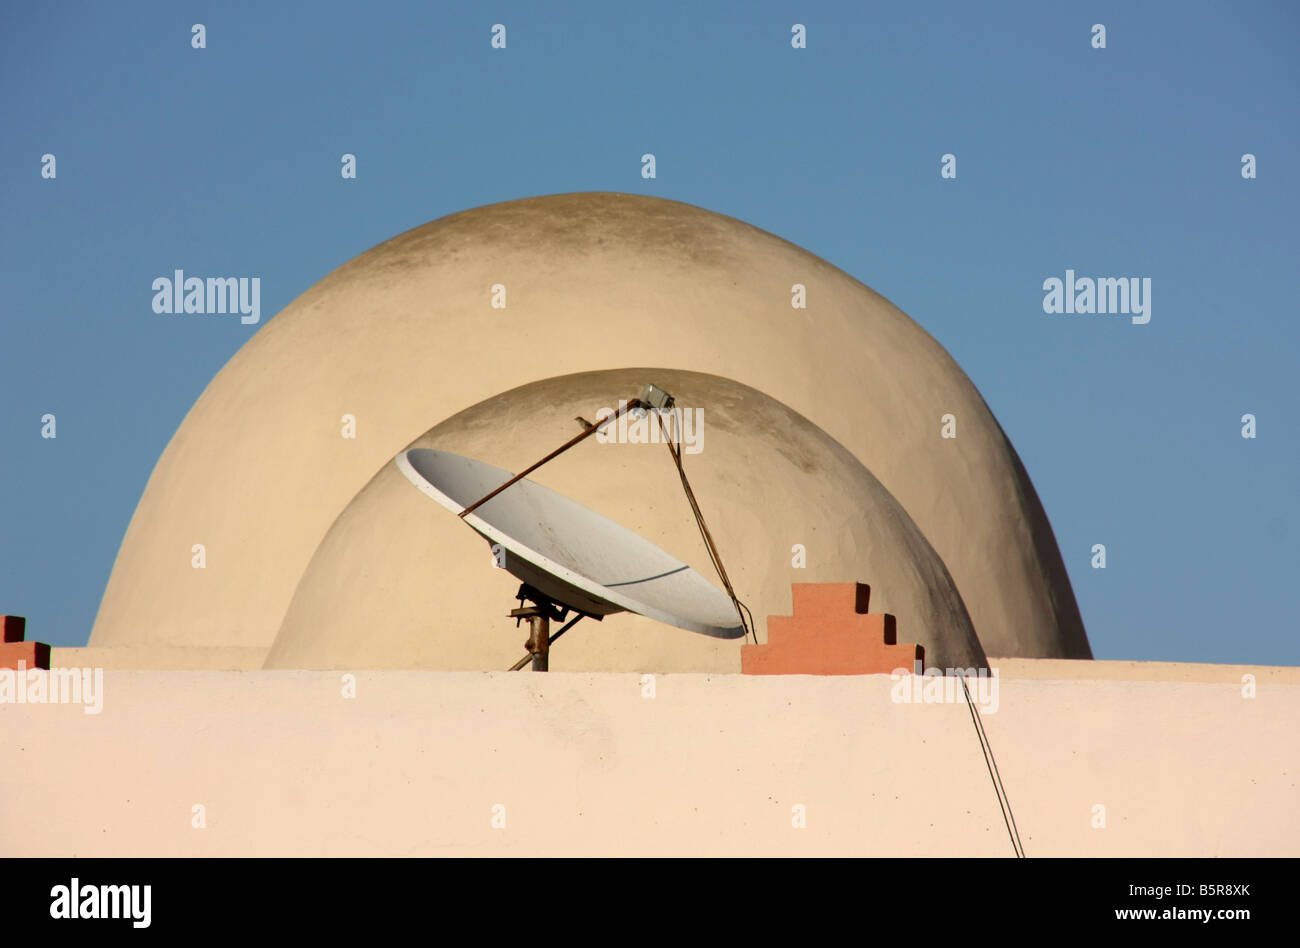 Traditional domed roofs and satellite dish Dakhla Western Sahara - Stock Image